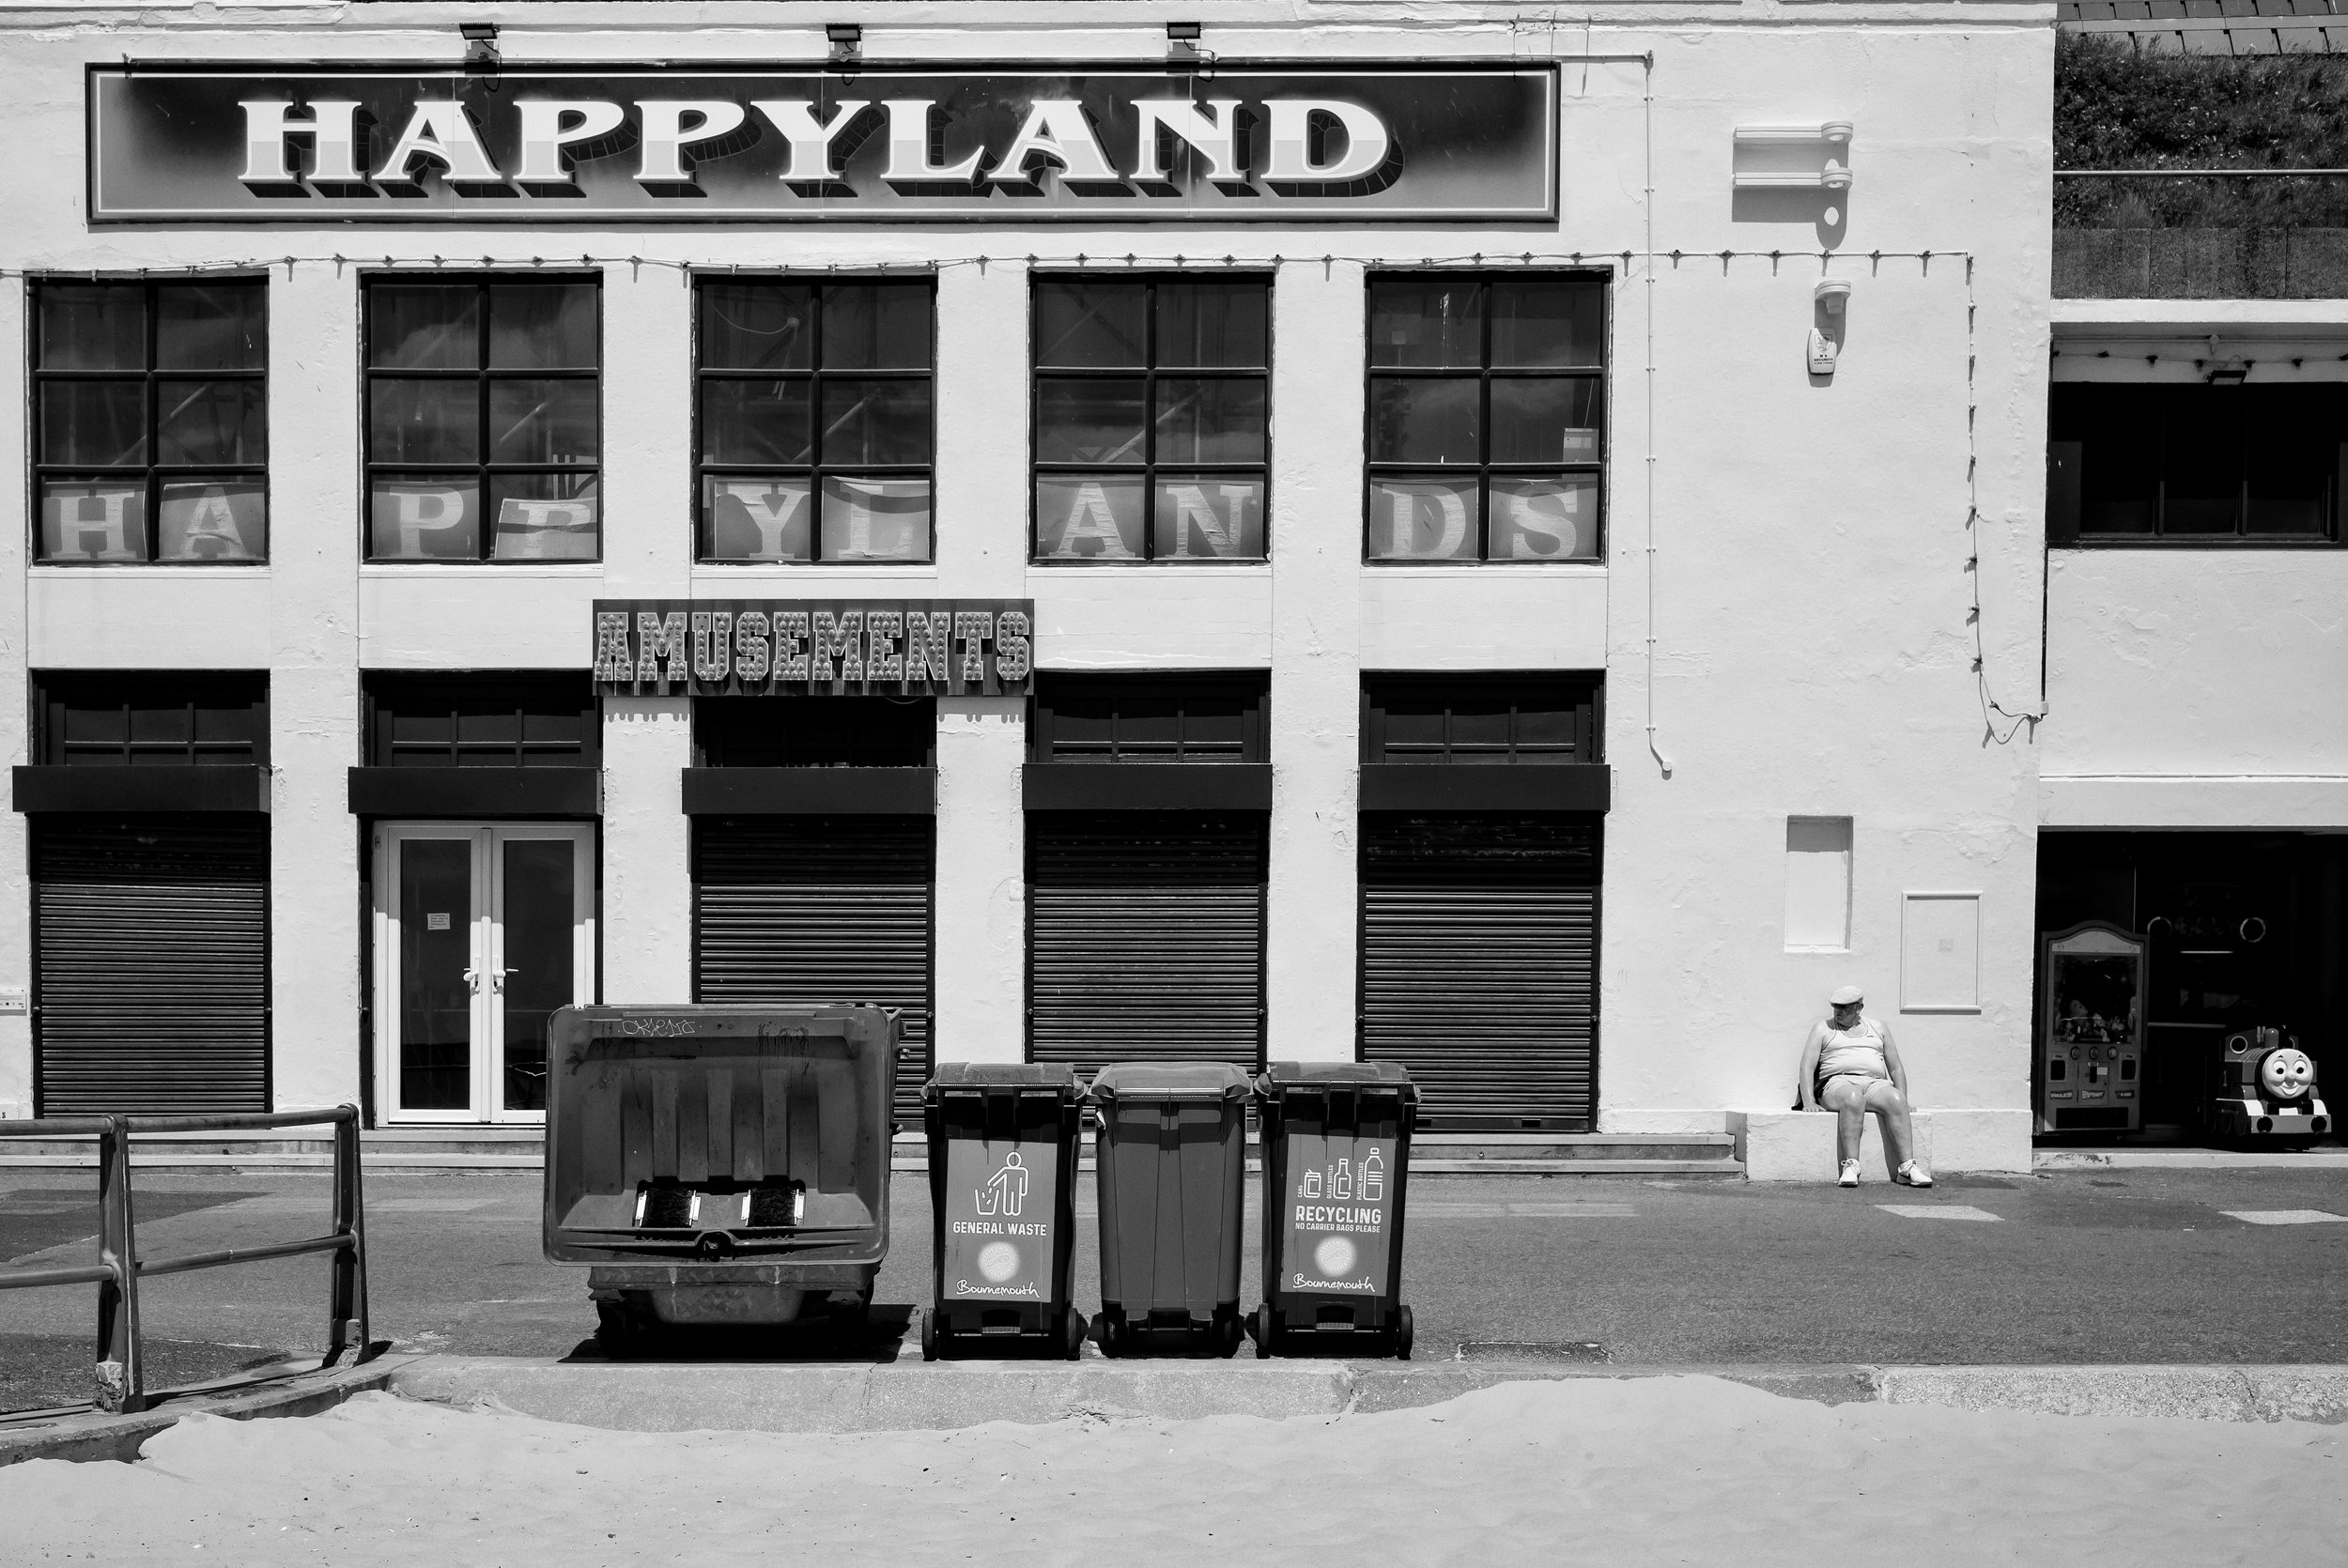 Project: Happyland